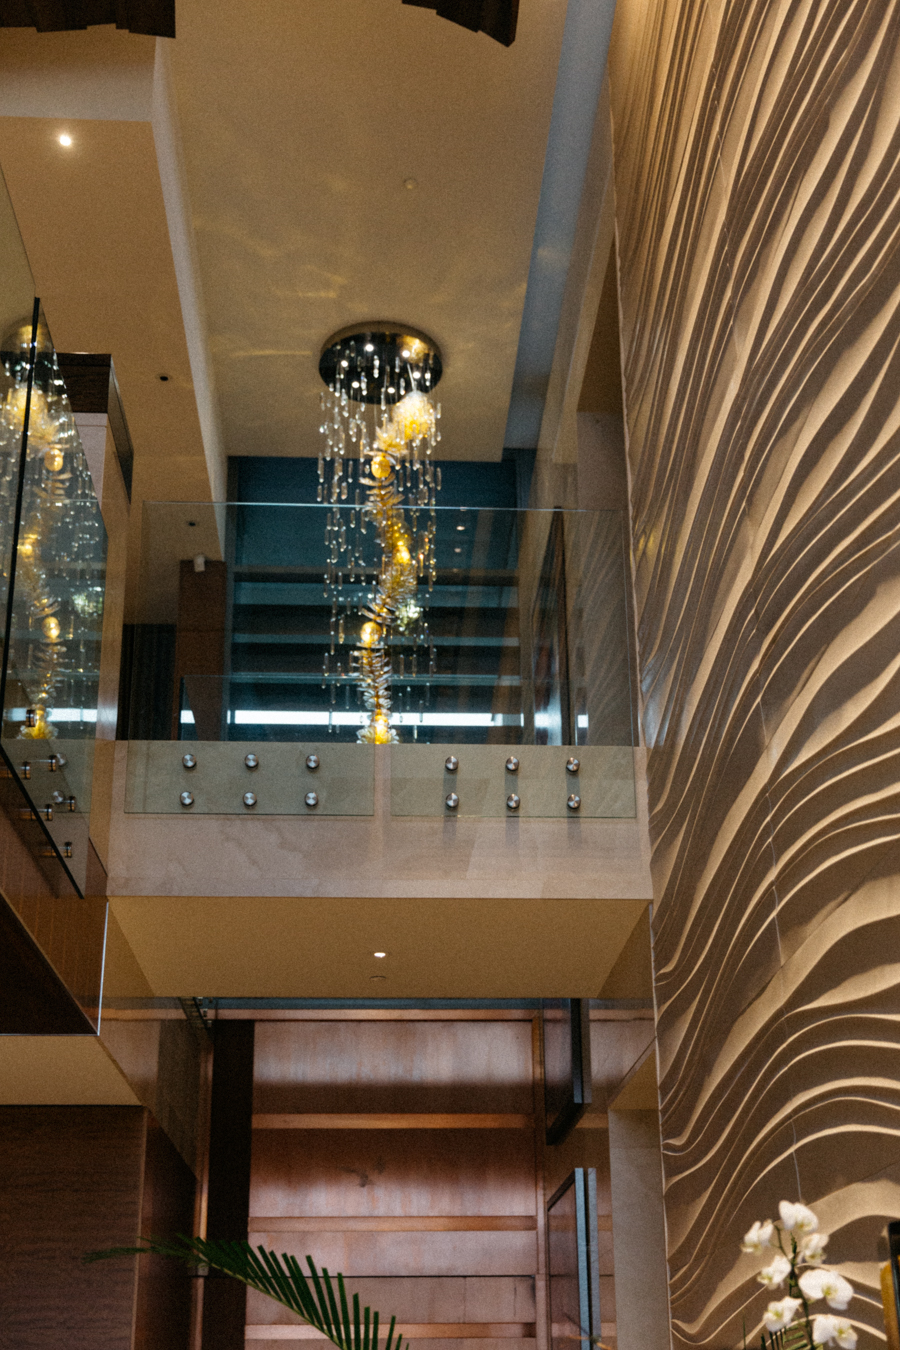 Lighting decor of a Crown Perth mansion.